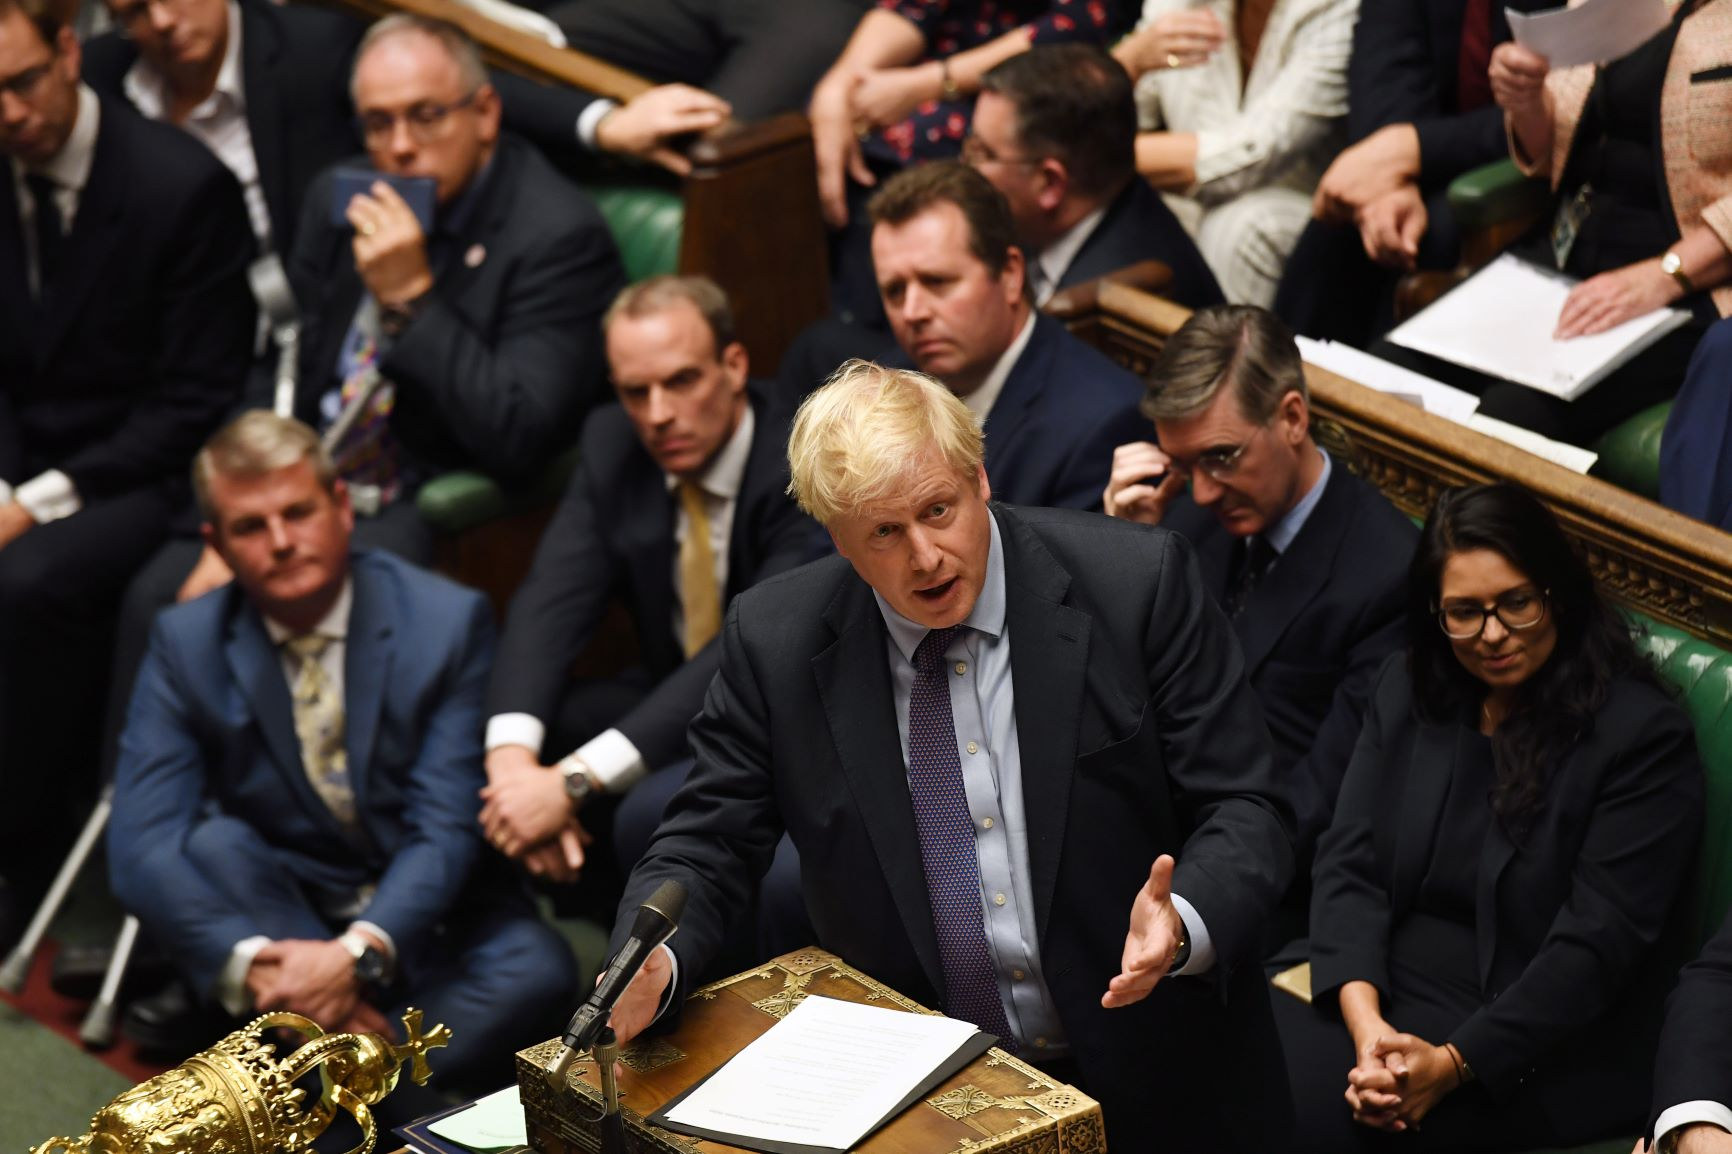 Prime Minister Boris Johnson Addresses the House of Commons from the Despatch Box